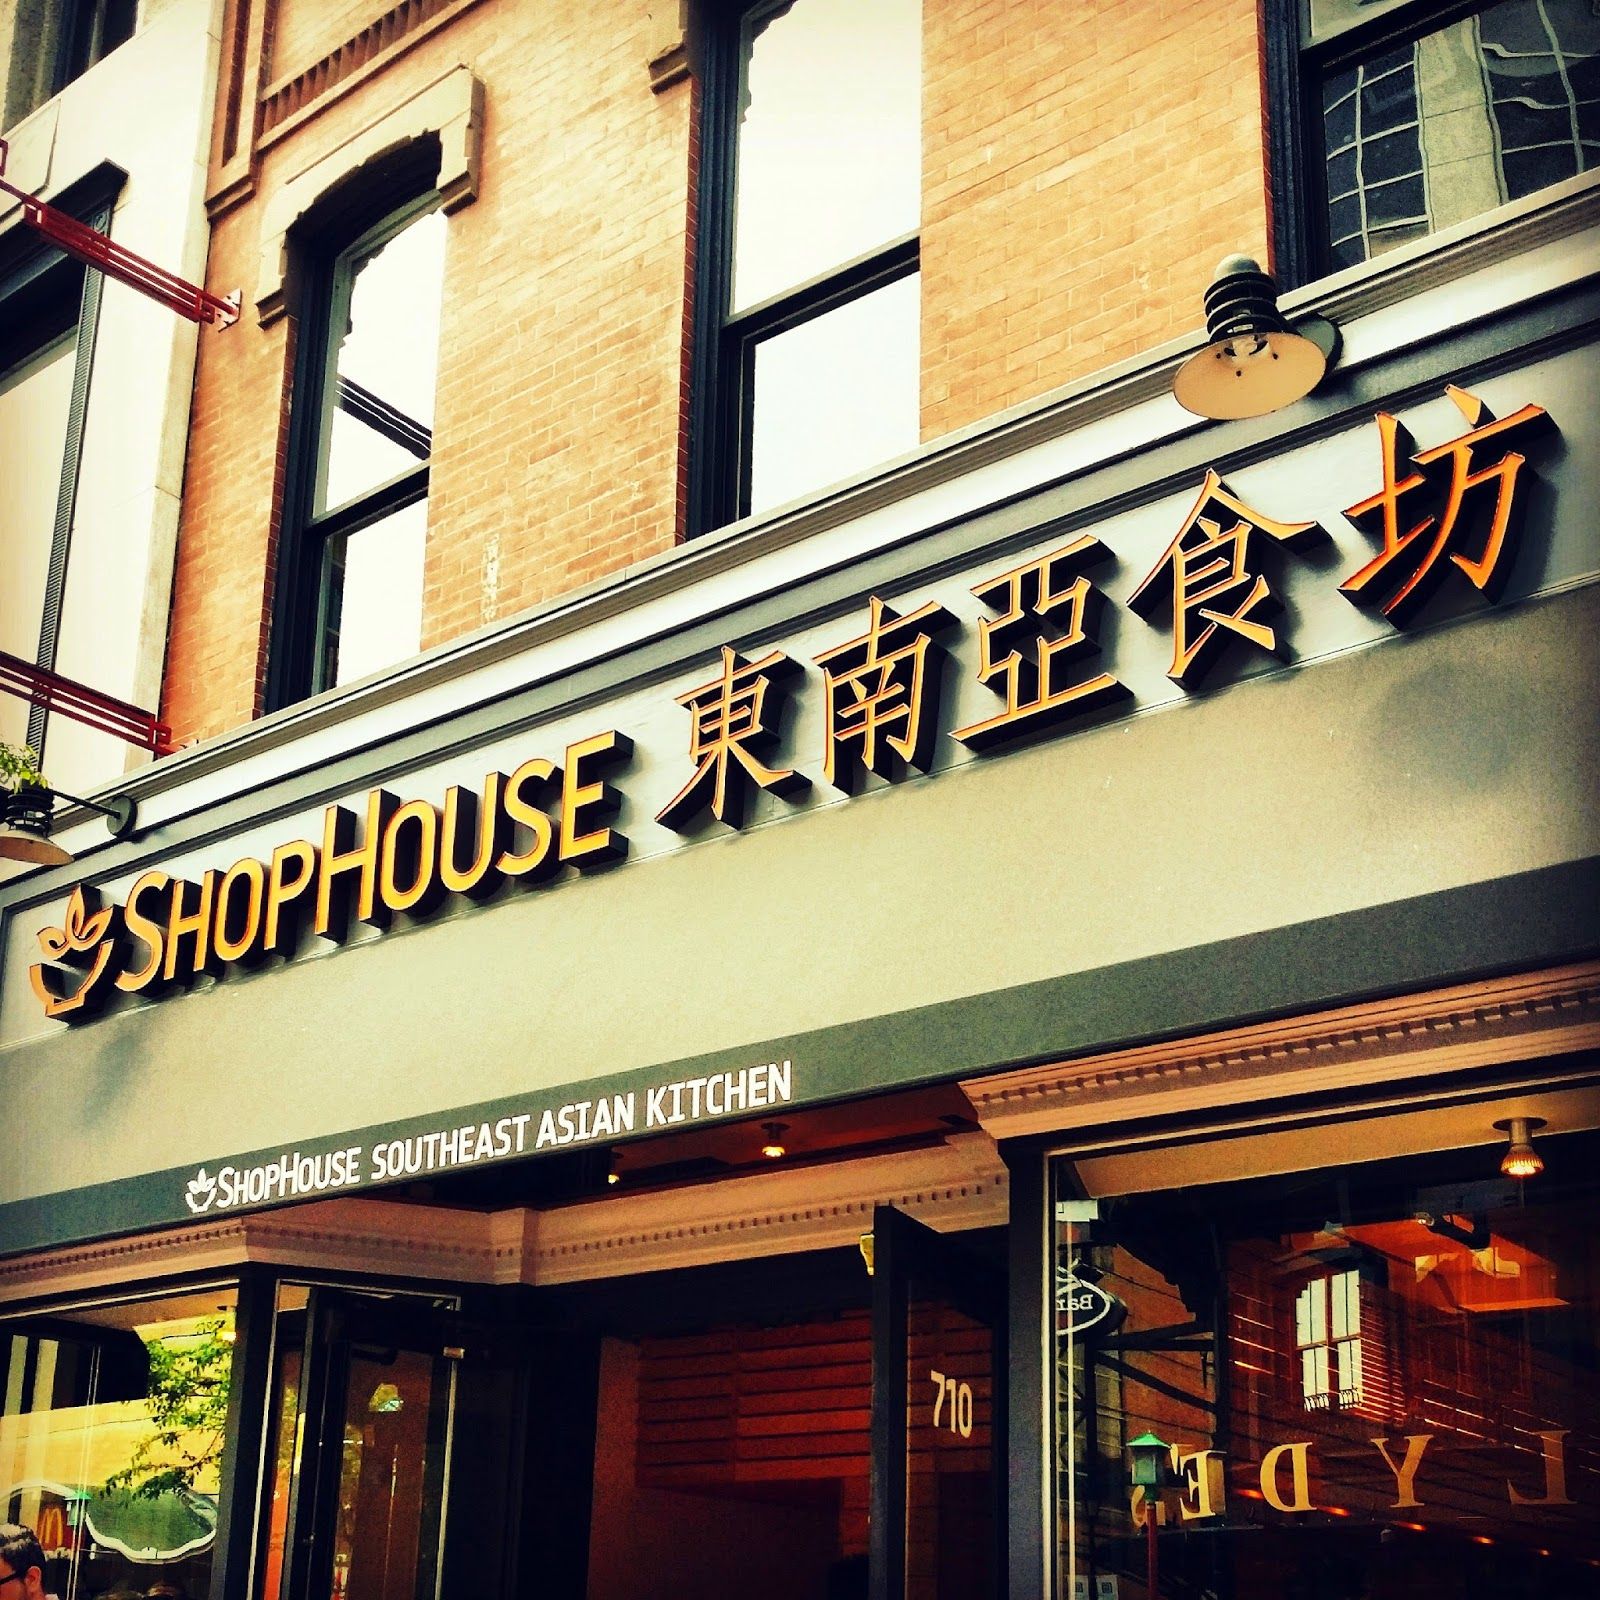 Shophouse Southeast Asian Kitchen: The 42: ShopHouse Opens, Pharmacy Bar Under New Ownership